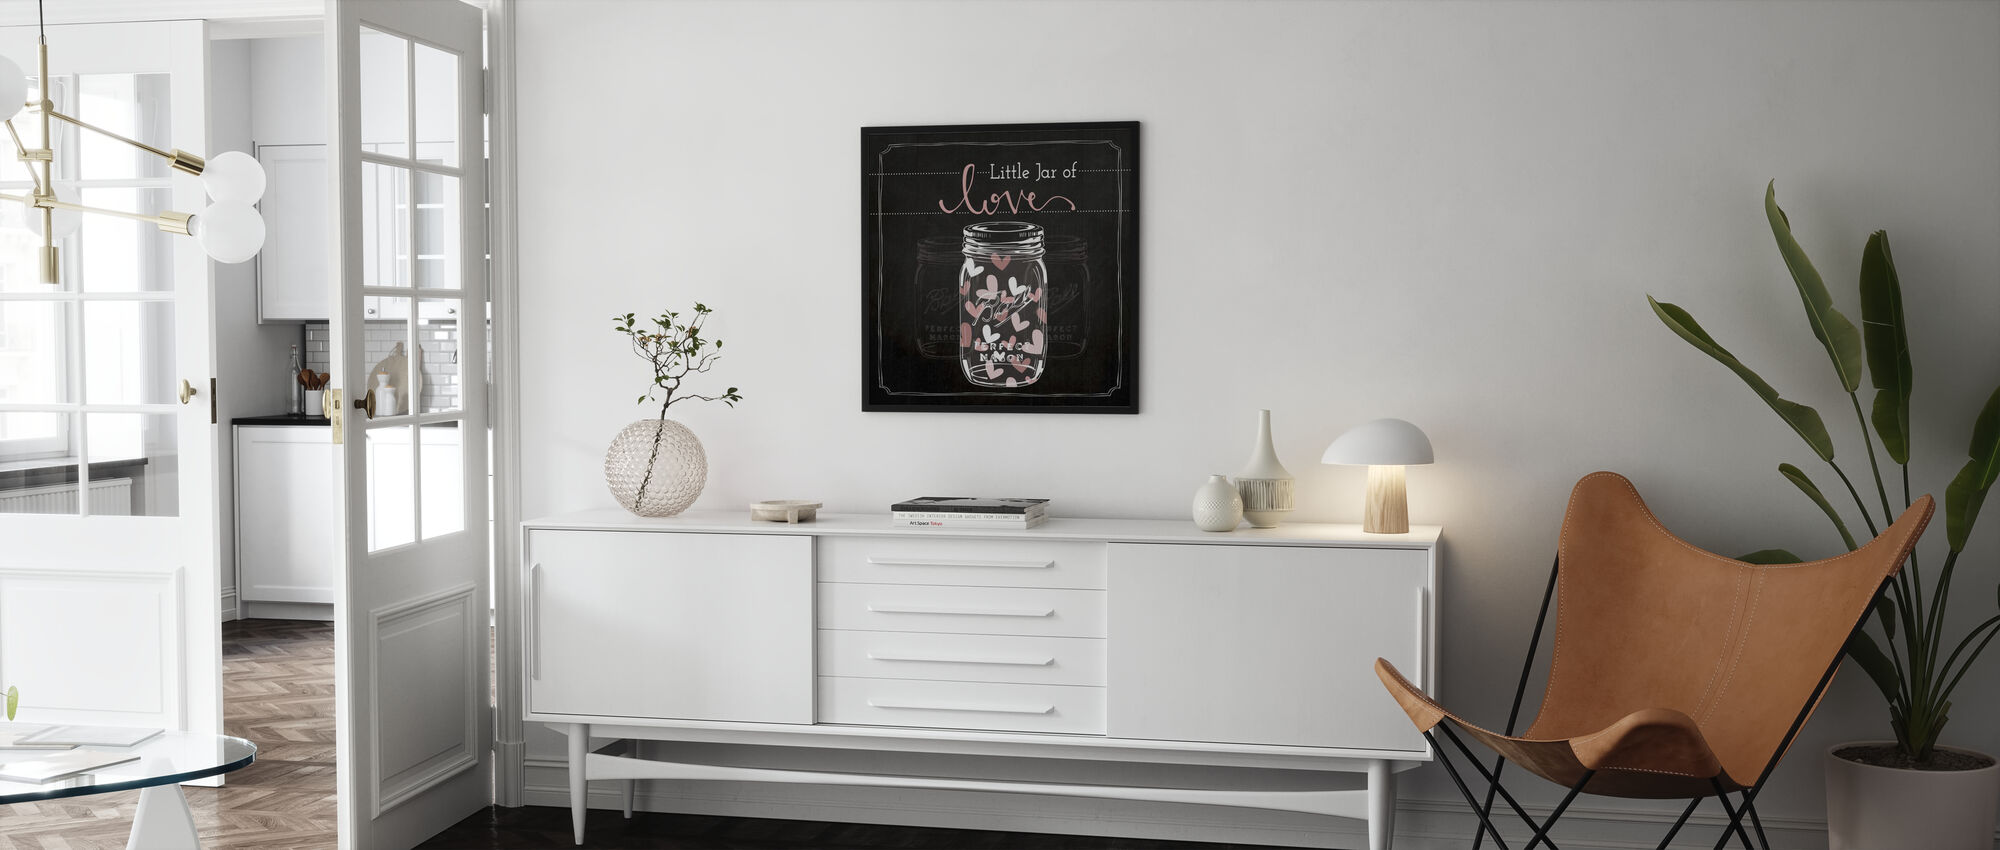 Jar of Love - Framed print - Living Room